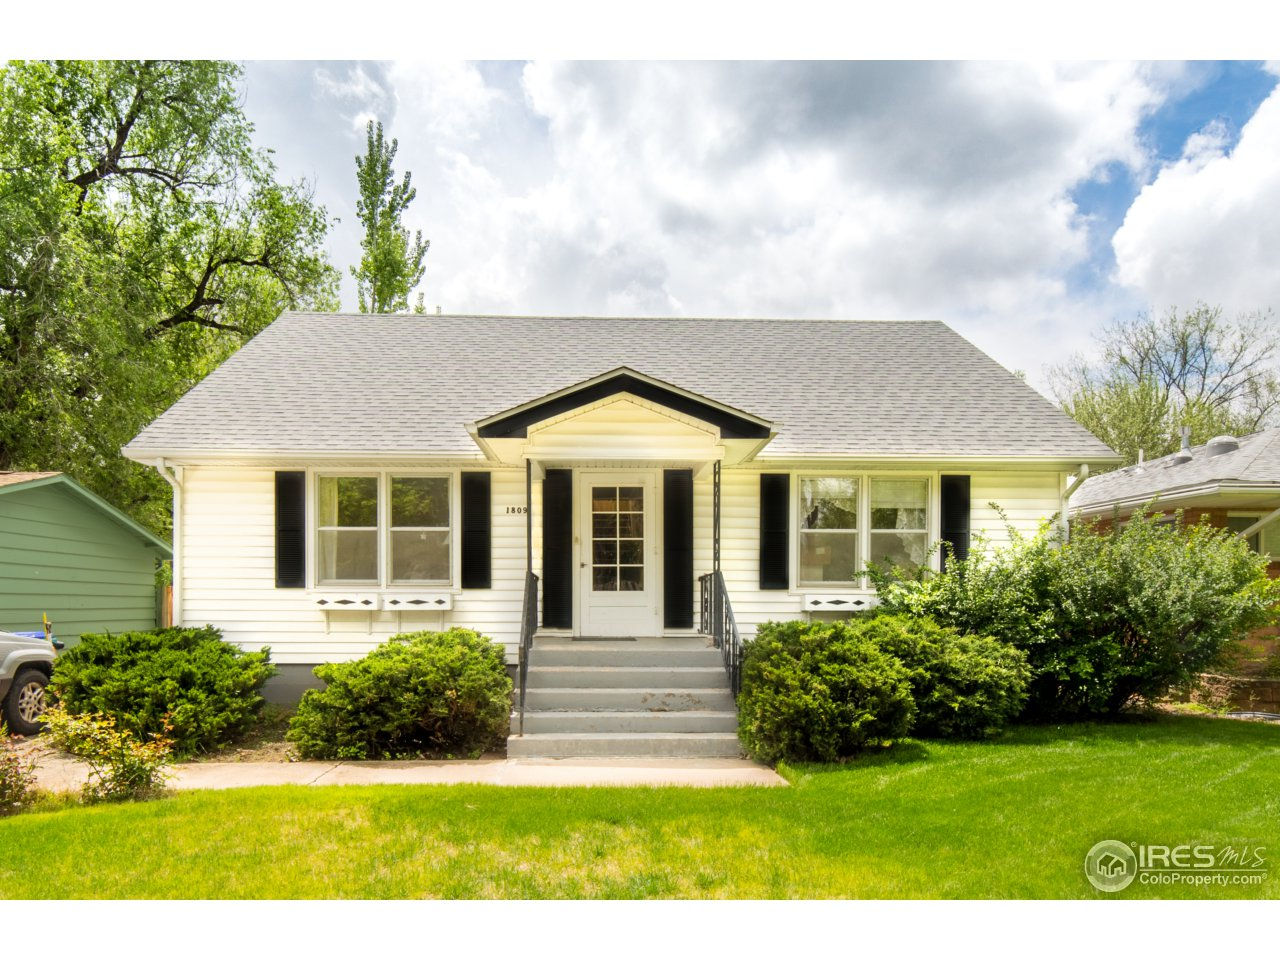 1809 Laporte Ave, Fort Collins CO 80521